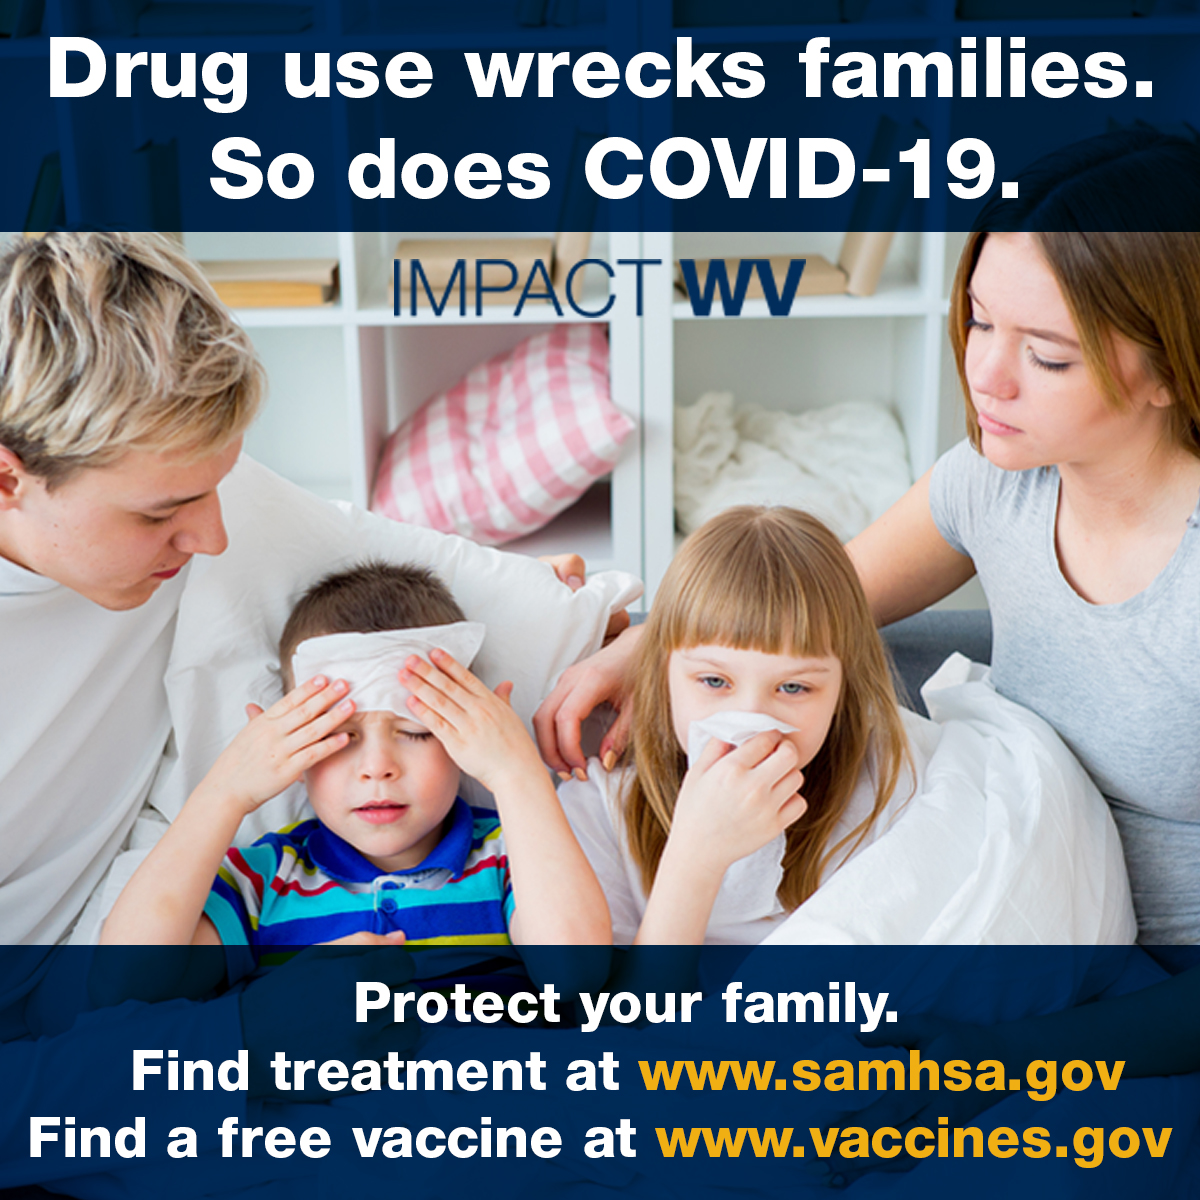 an image with the drug use wrecks families text featuring a happy family